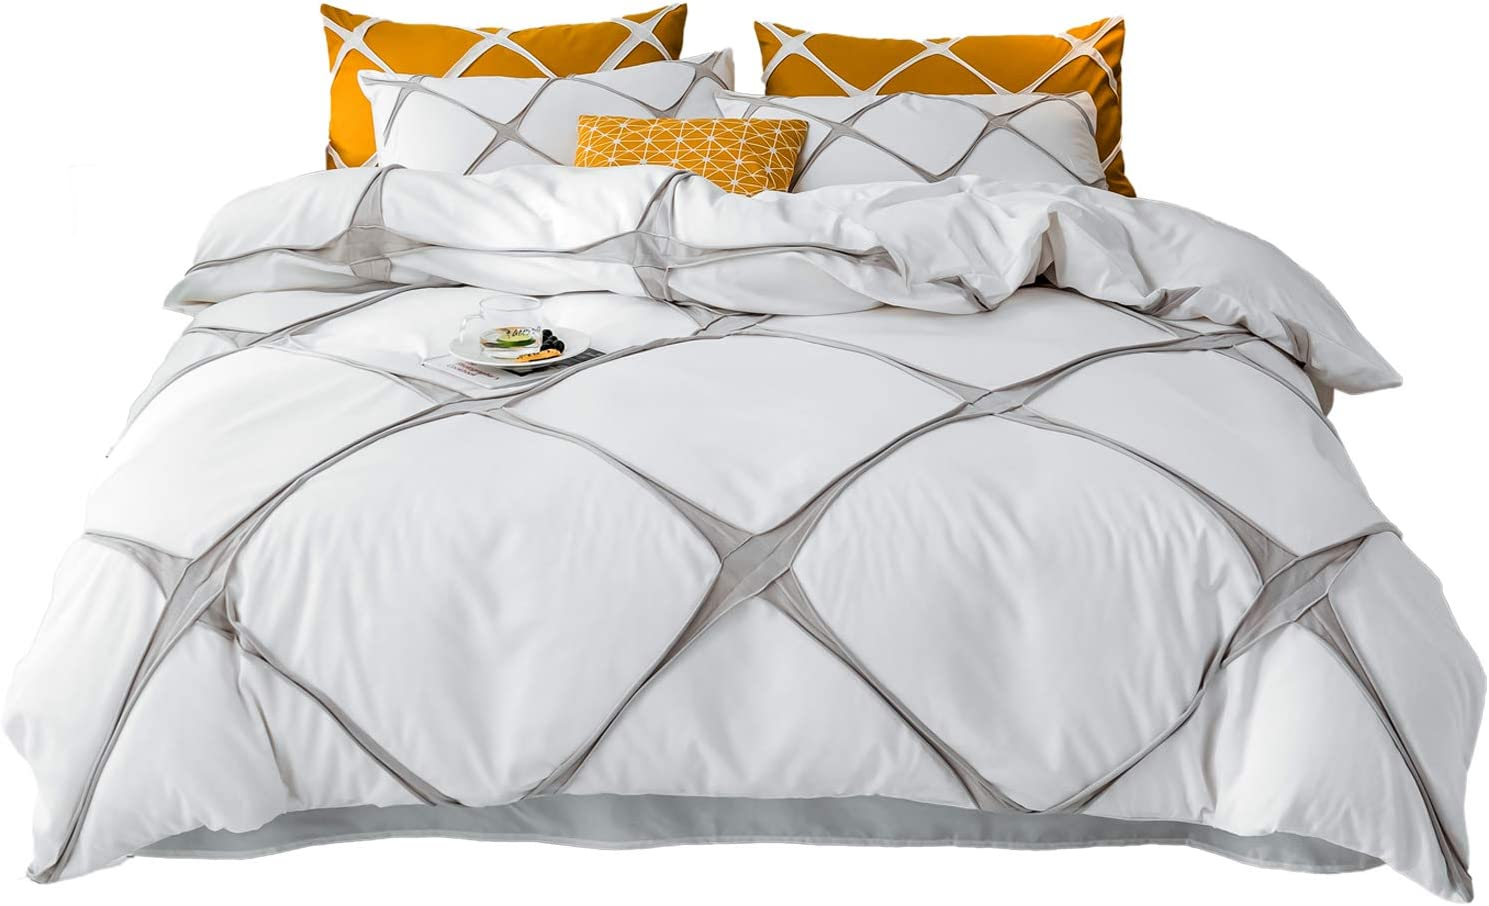 Duvet Cover 3 Piece Set - Minimalist Style Plaid Bedding Collection - Minimalist Style Plaid Comforter Cover with Zipper Closure and 2 Pillow Shams, White - Queen 90